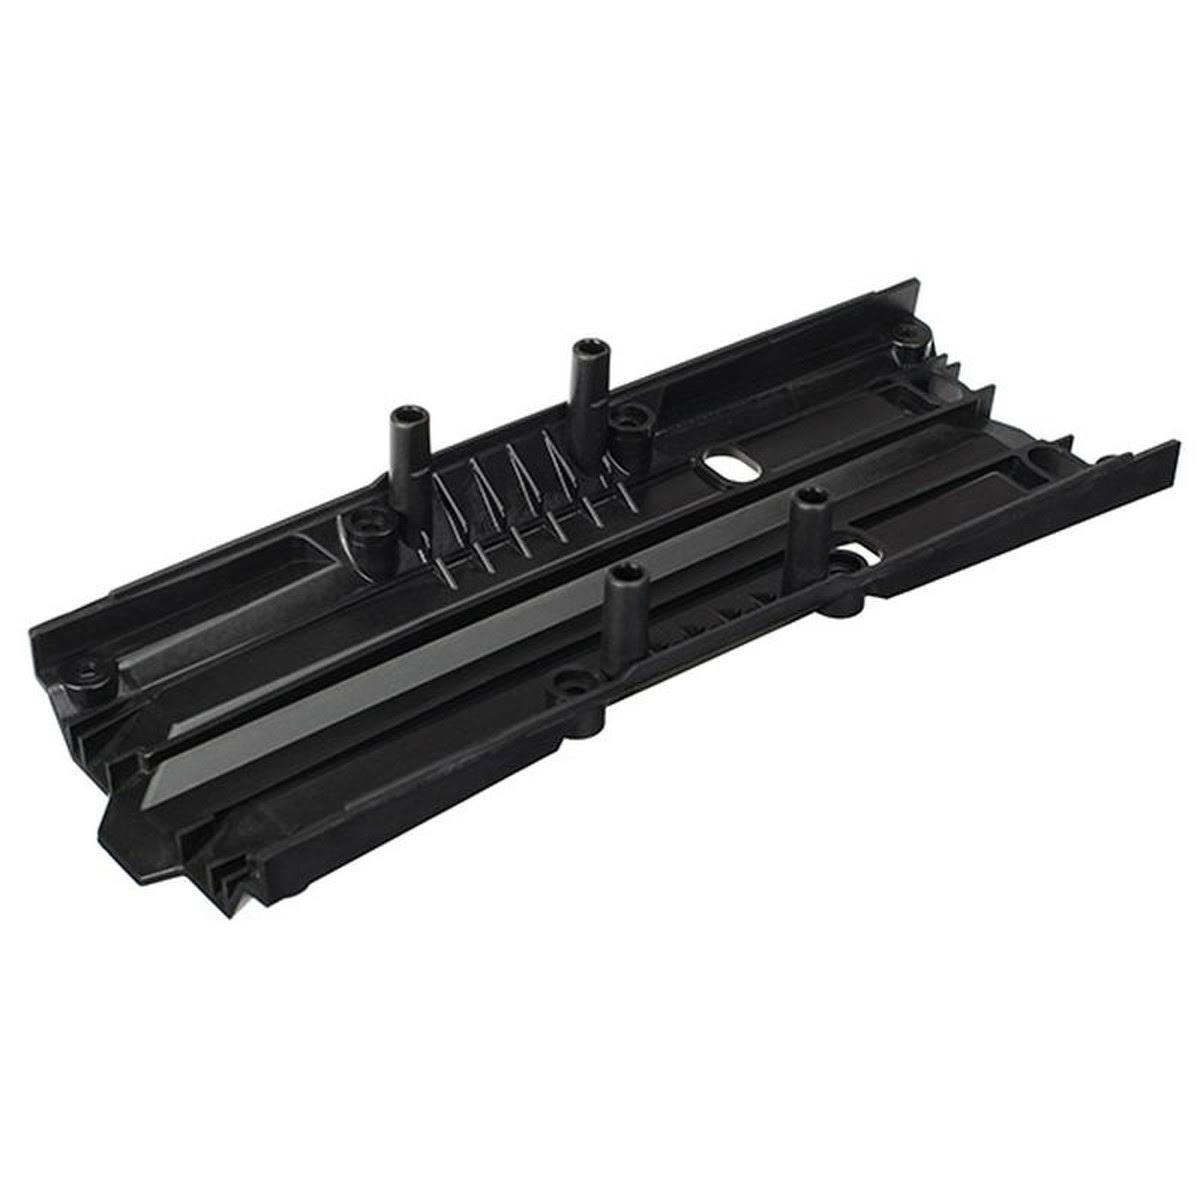 Traxxas X-maxx Center Skid Plate